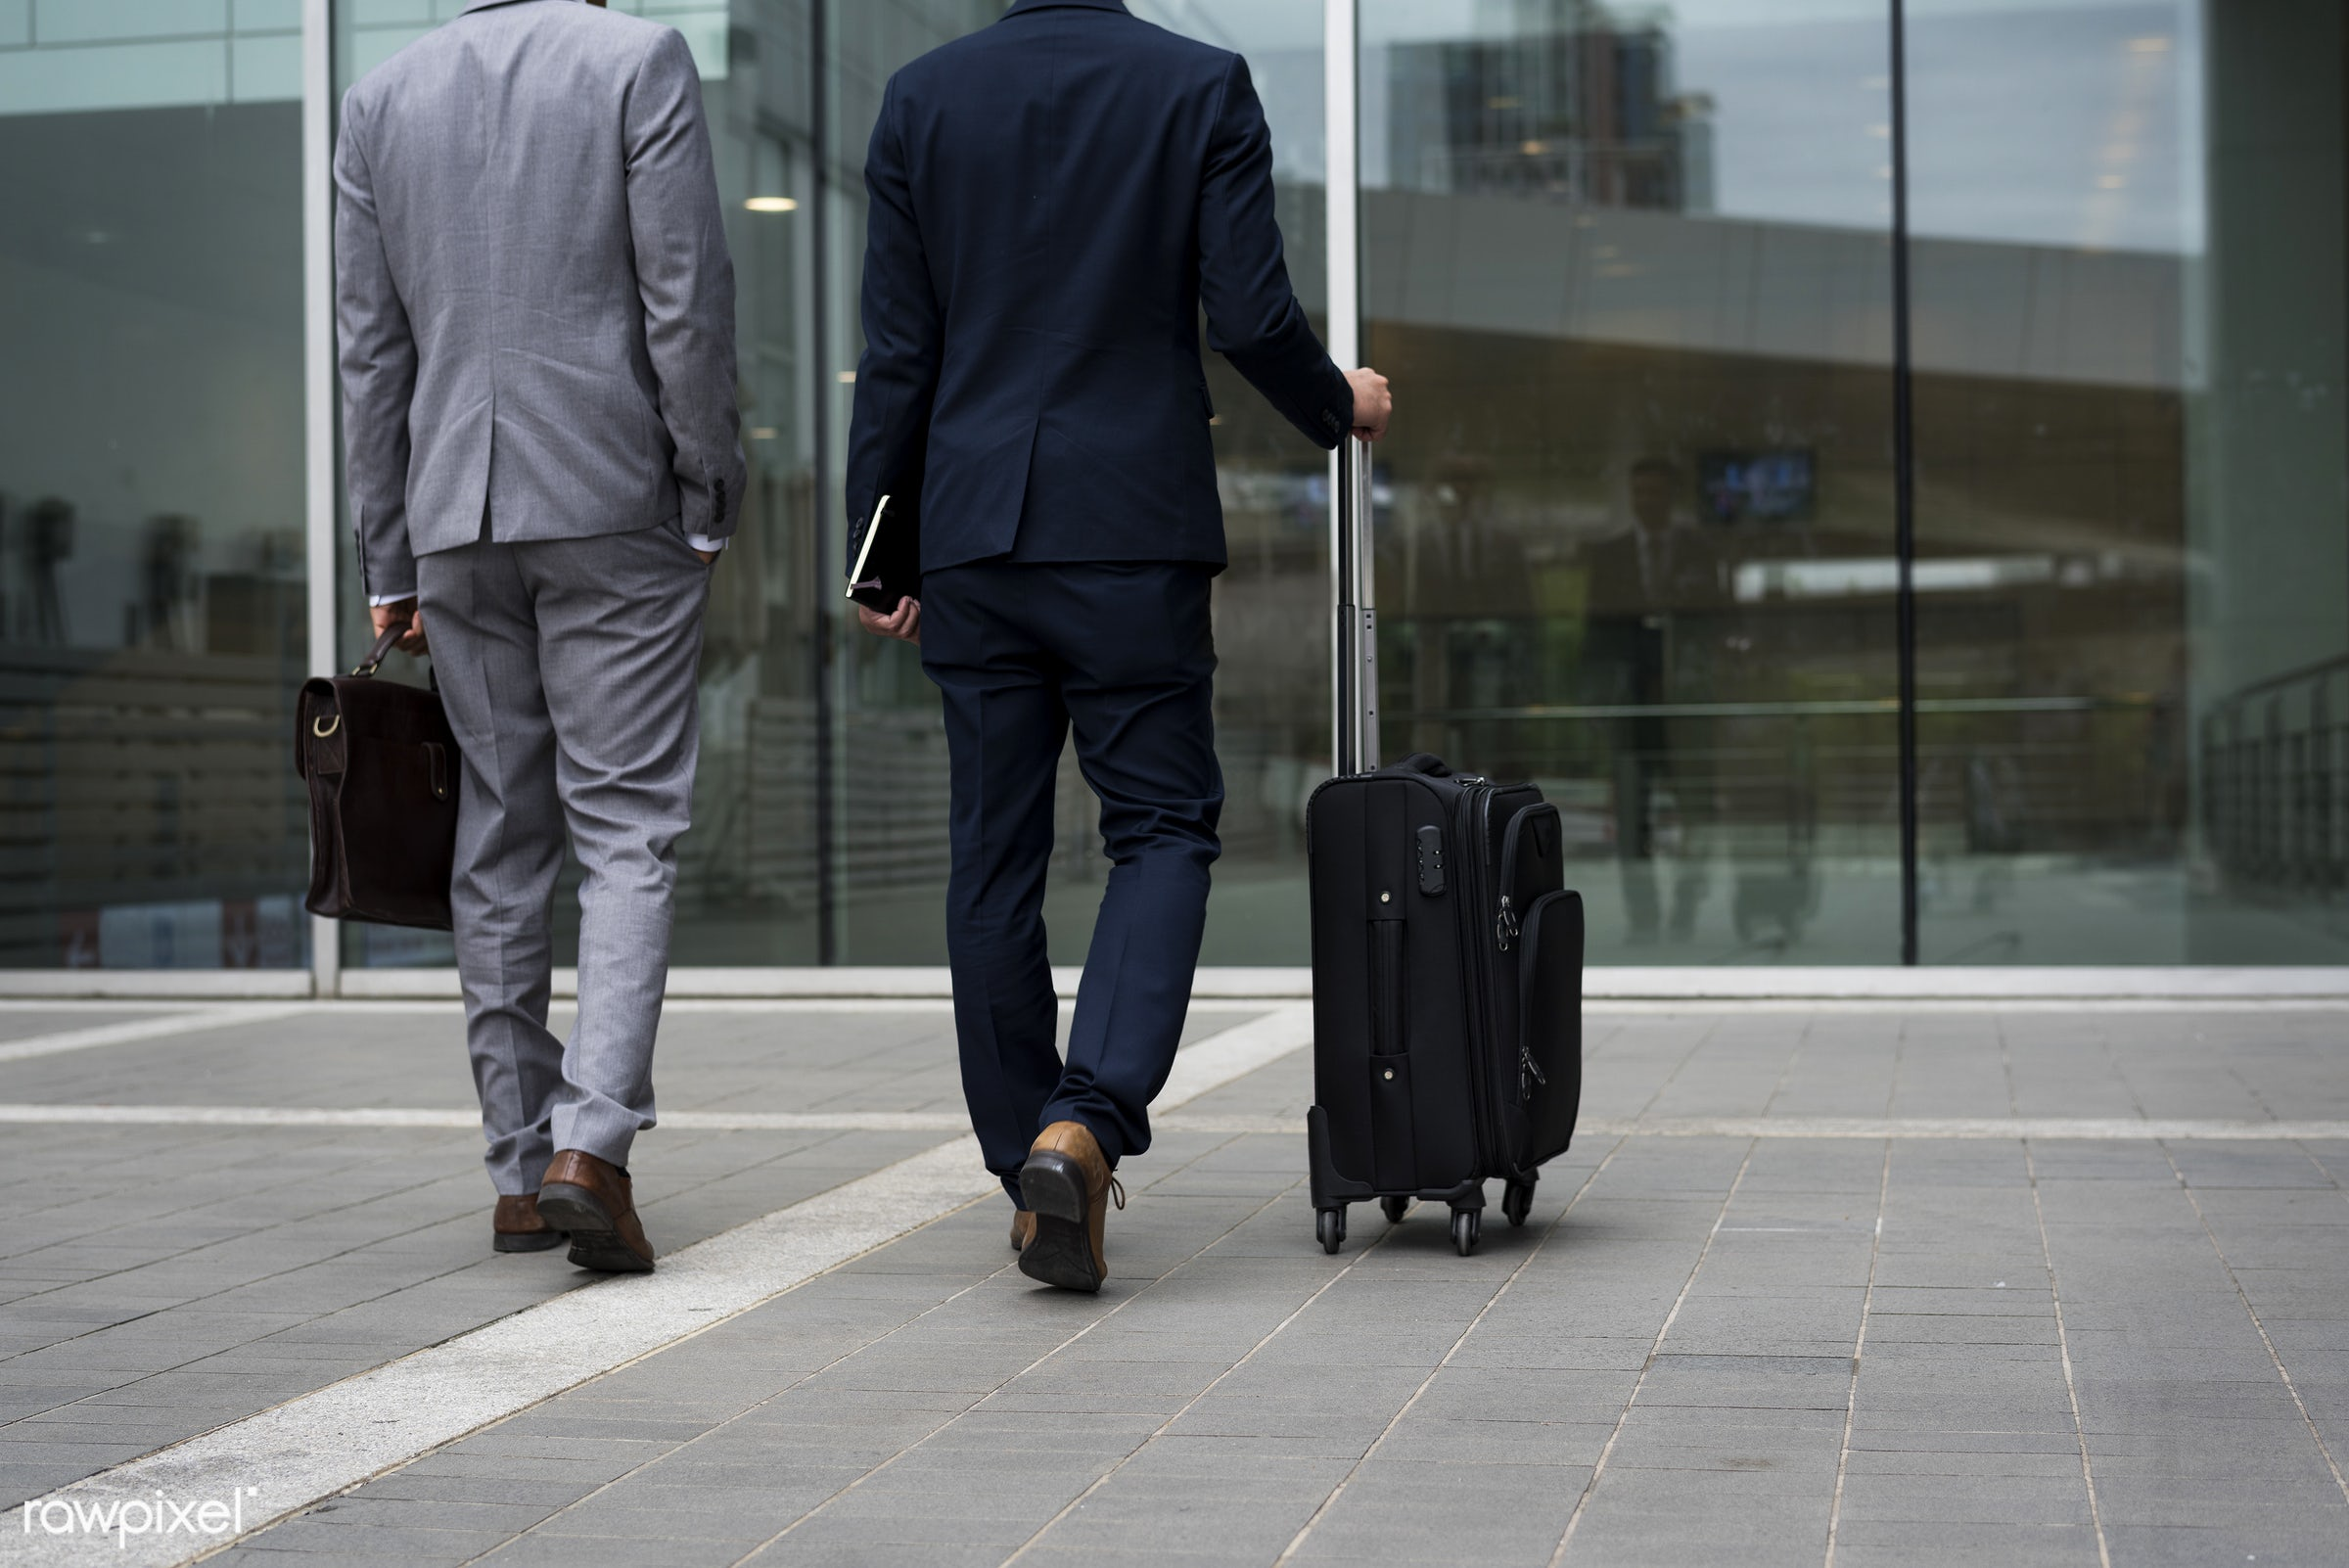 expression, business trip, face, person, suit and tie, manager, white collar worker, diverse, luggage, travel, people,...